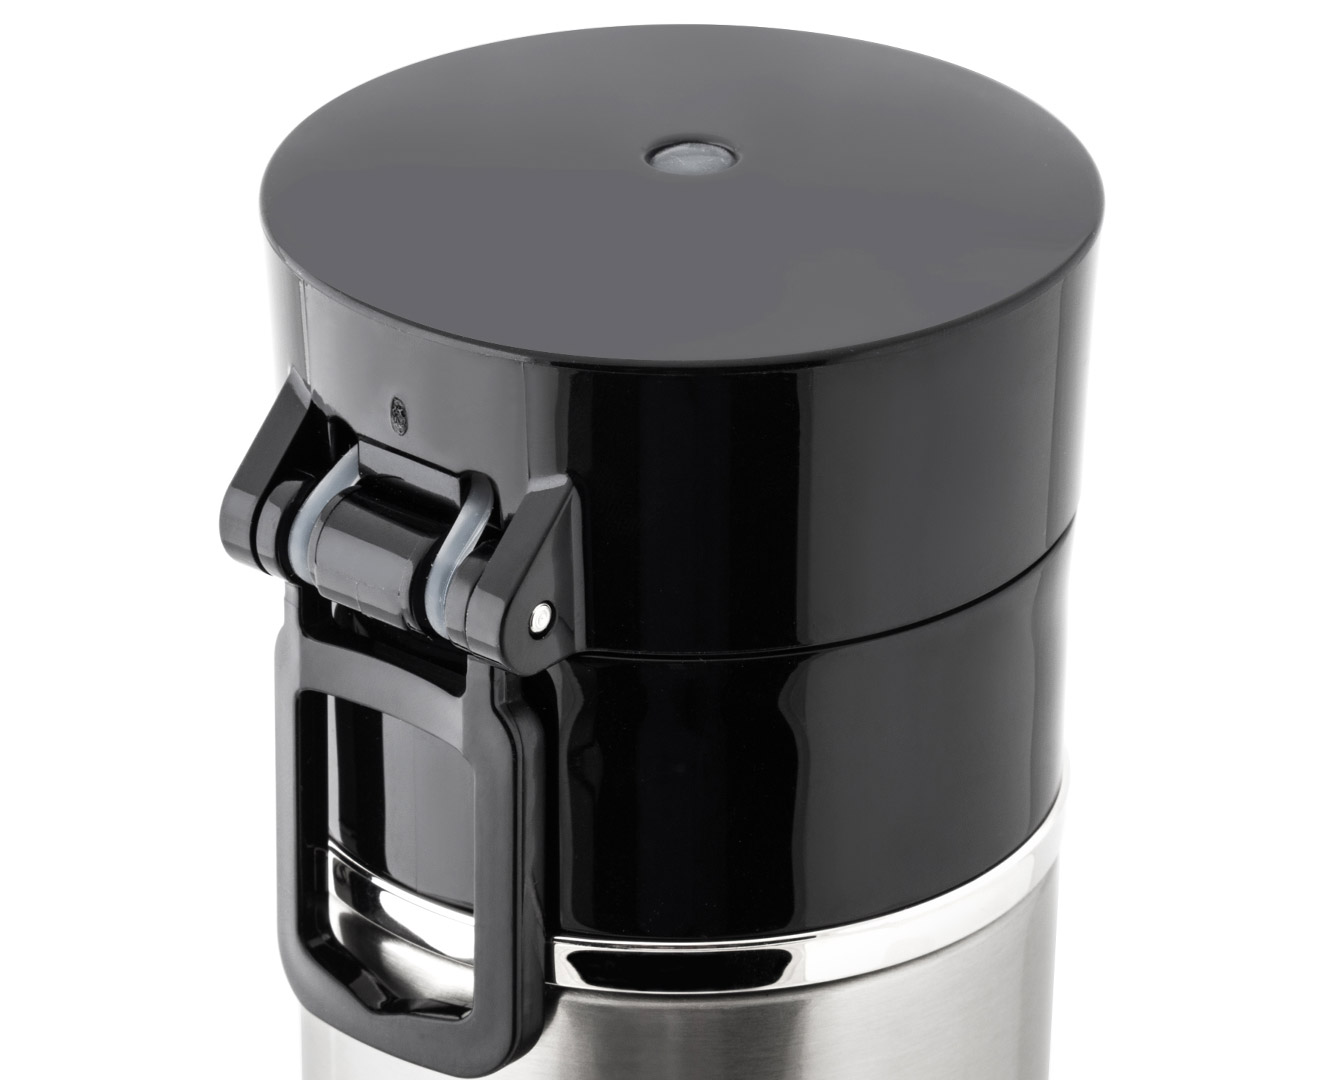 Thermos Sipp 530ml Stainless Steel Vacuum Insulated